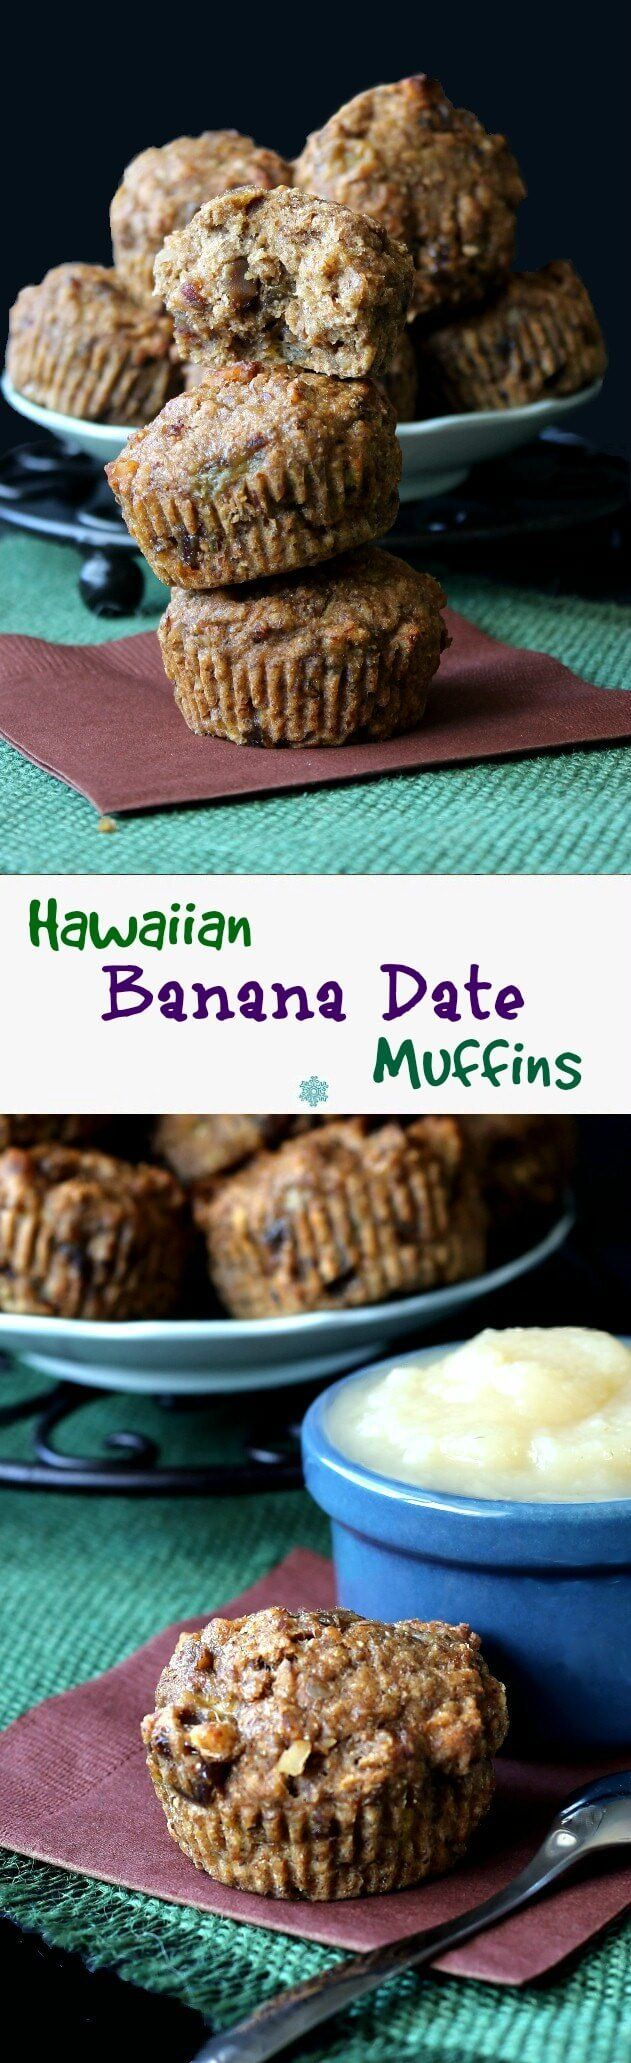 Hawaiian Banana Date Muffins are so moist and have some of everyone's tropical favorites. Just mix and bake and you'll be feeling the ocean breeze in no time.